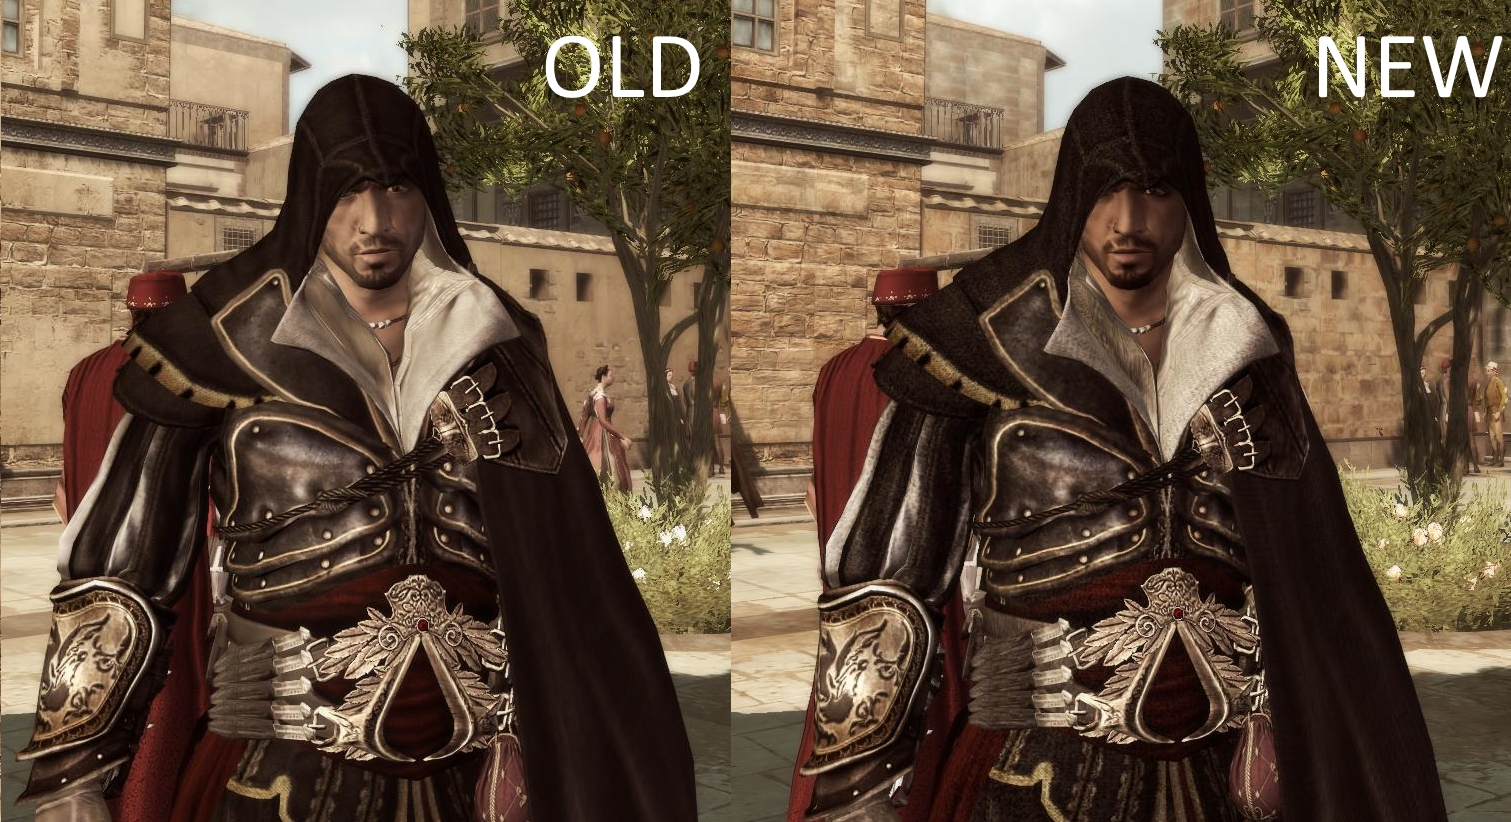 Ezio In Altair Armor Comparison Image Assassin S Creed 2